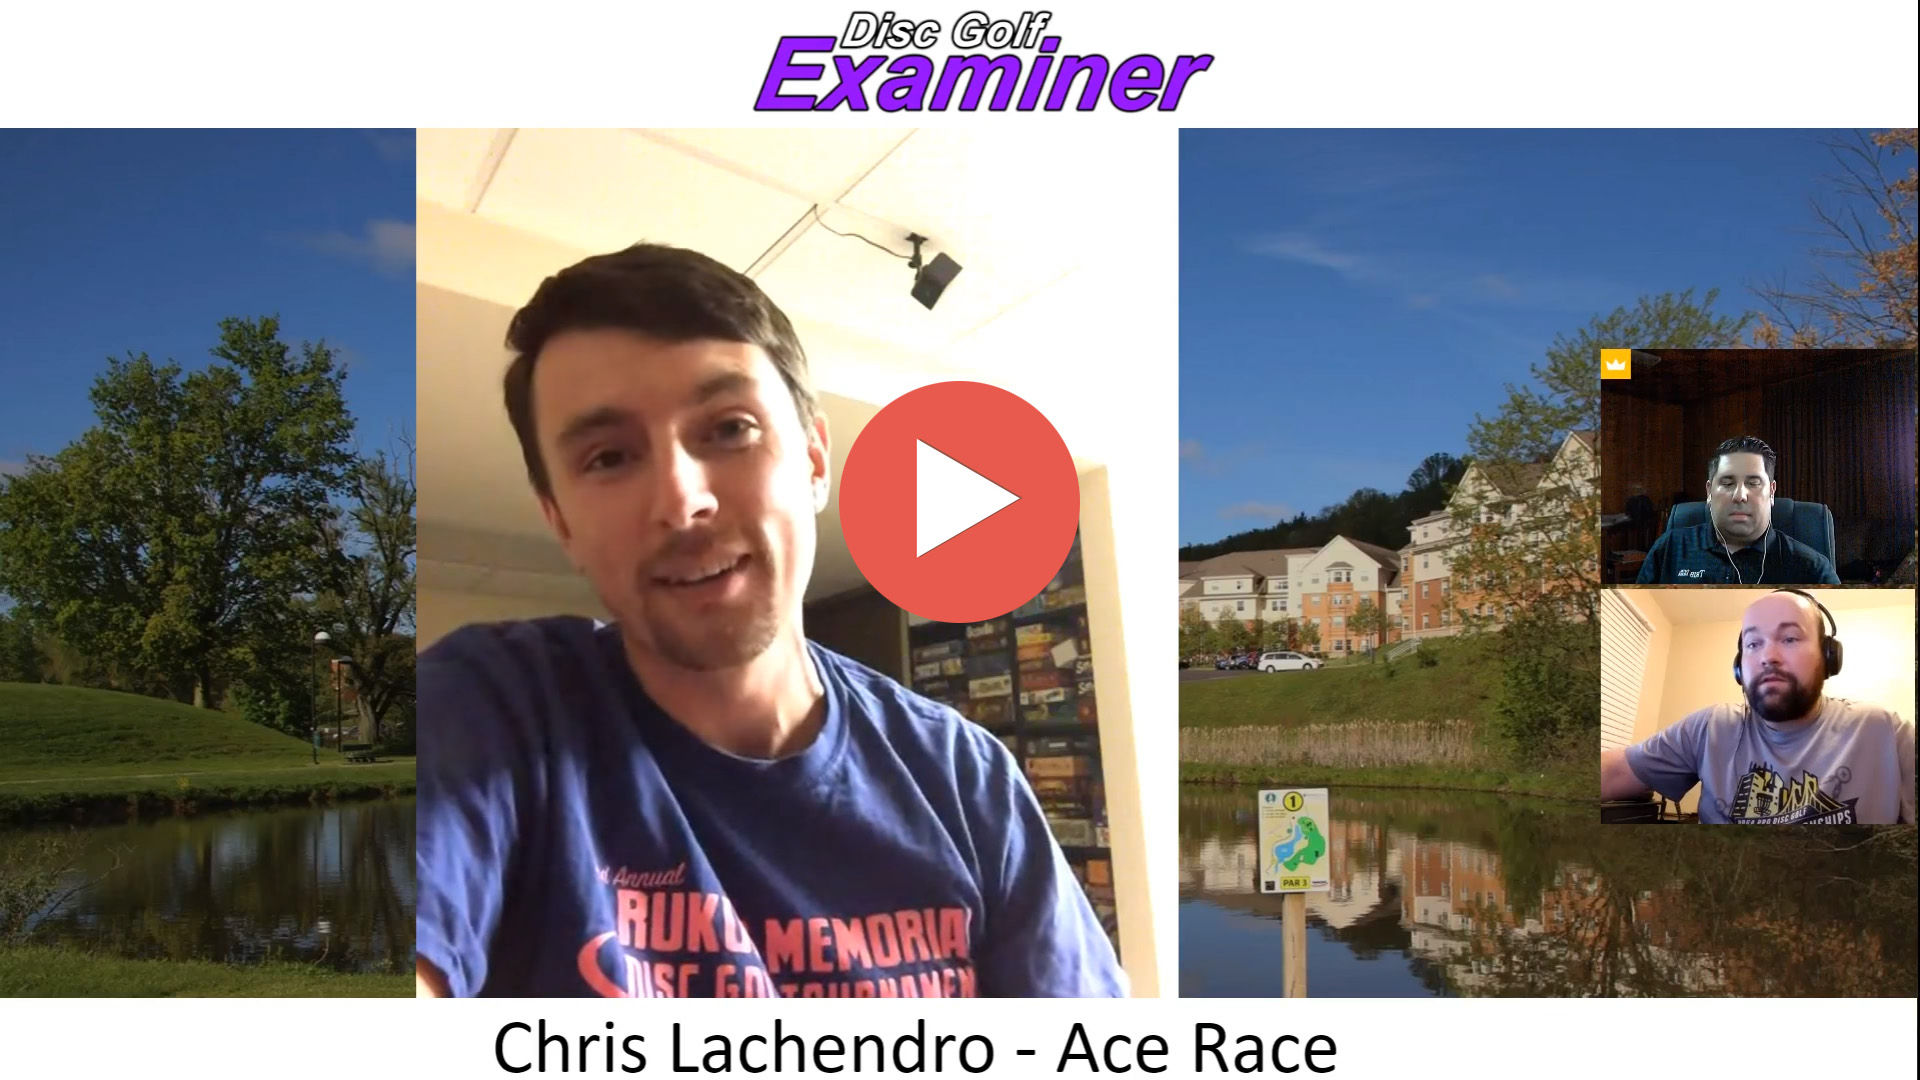 Chris Lachendro, Ace Race, PFDO - Volunteers Needed!